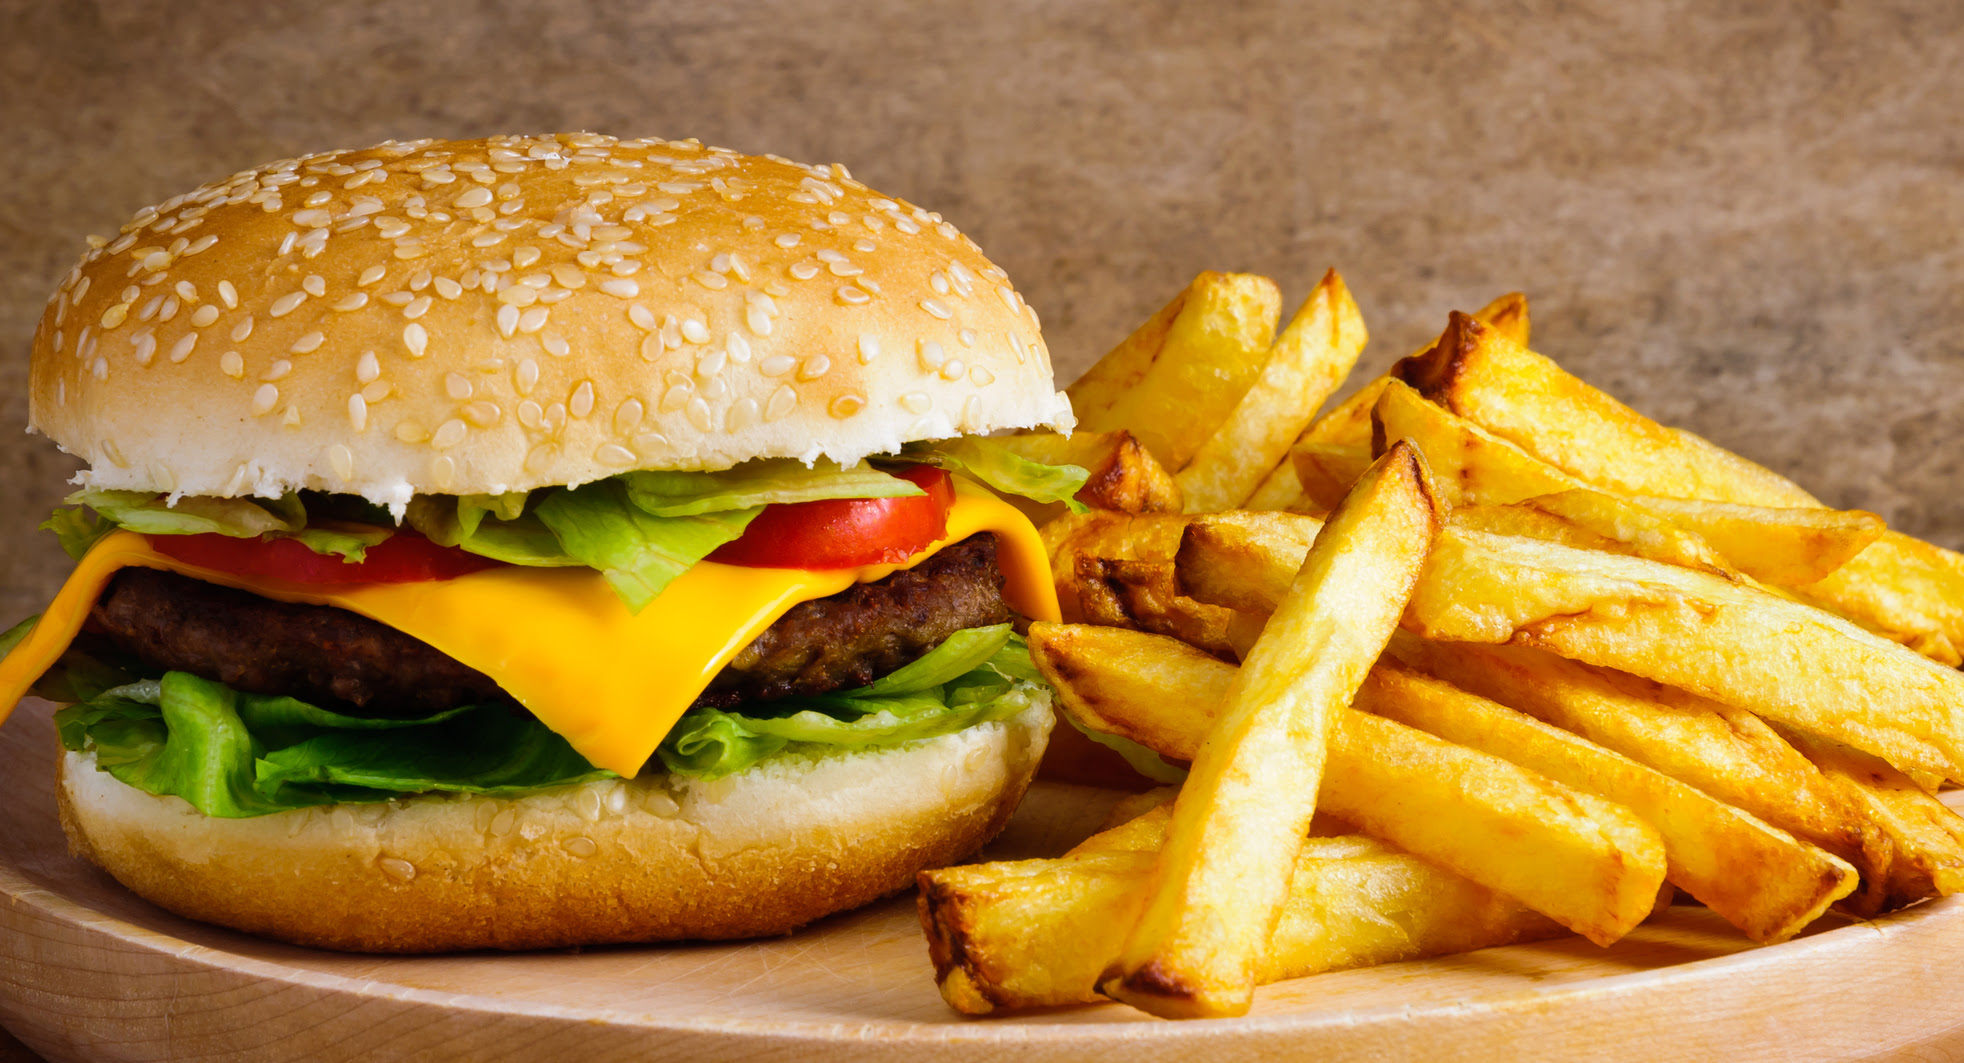 Top 7 Apps For Finding Fast Food ? Near Me, Satisfy Your ...